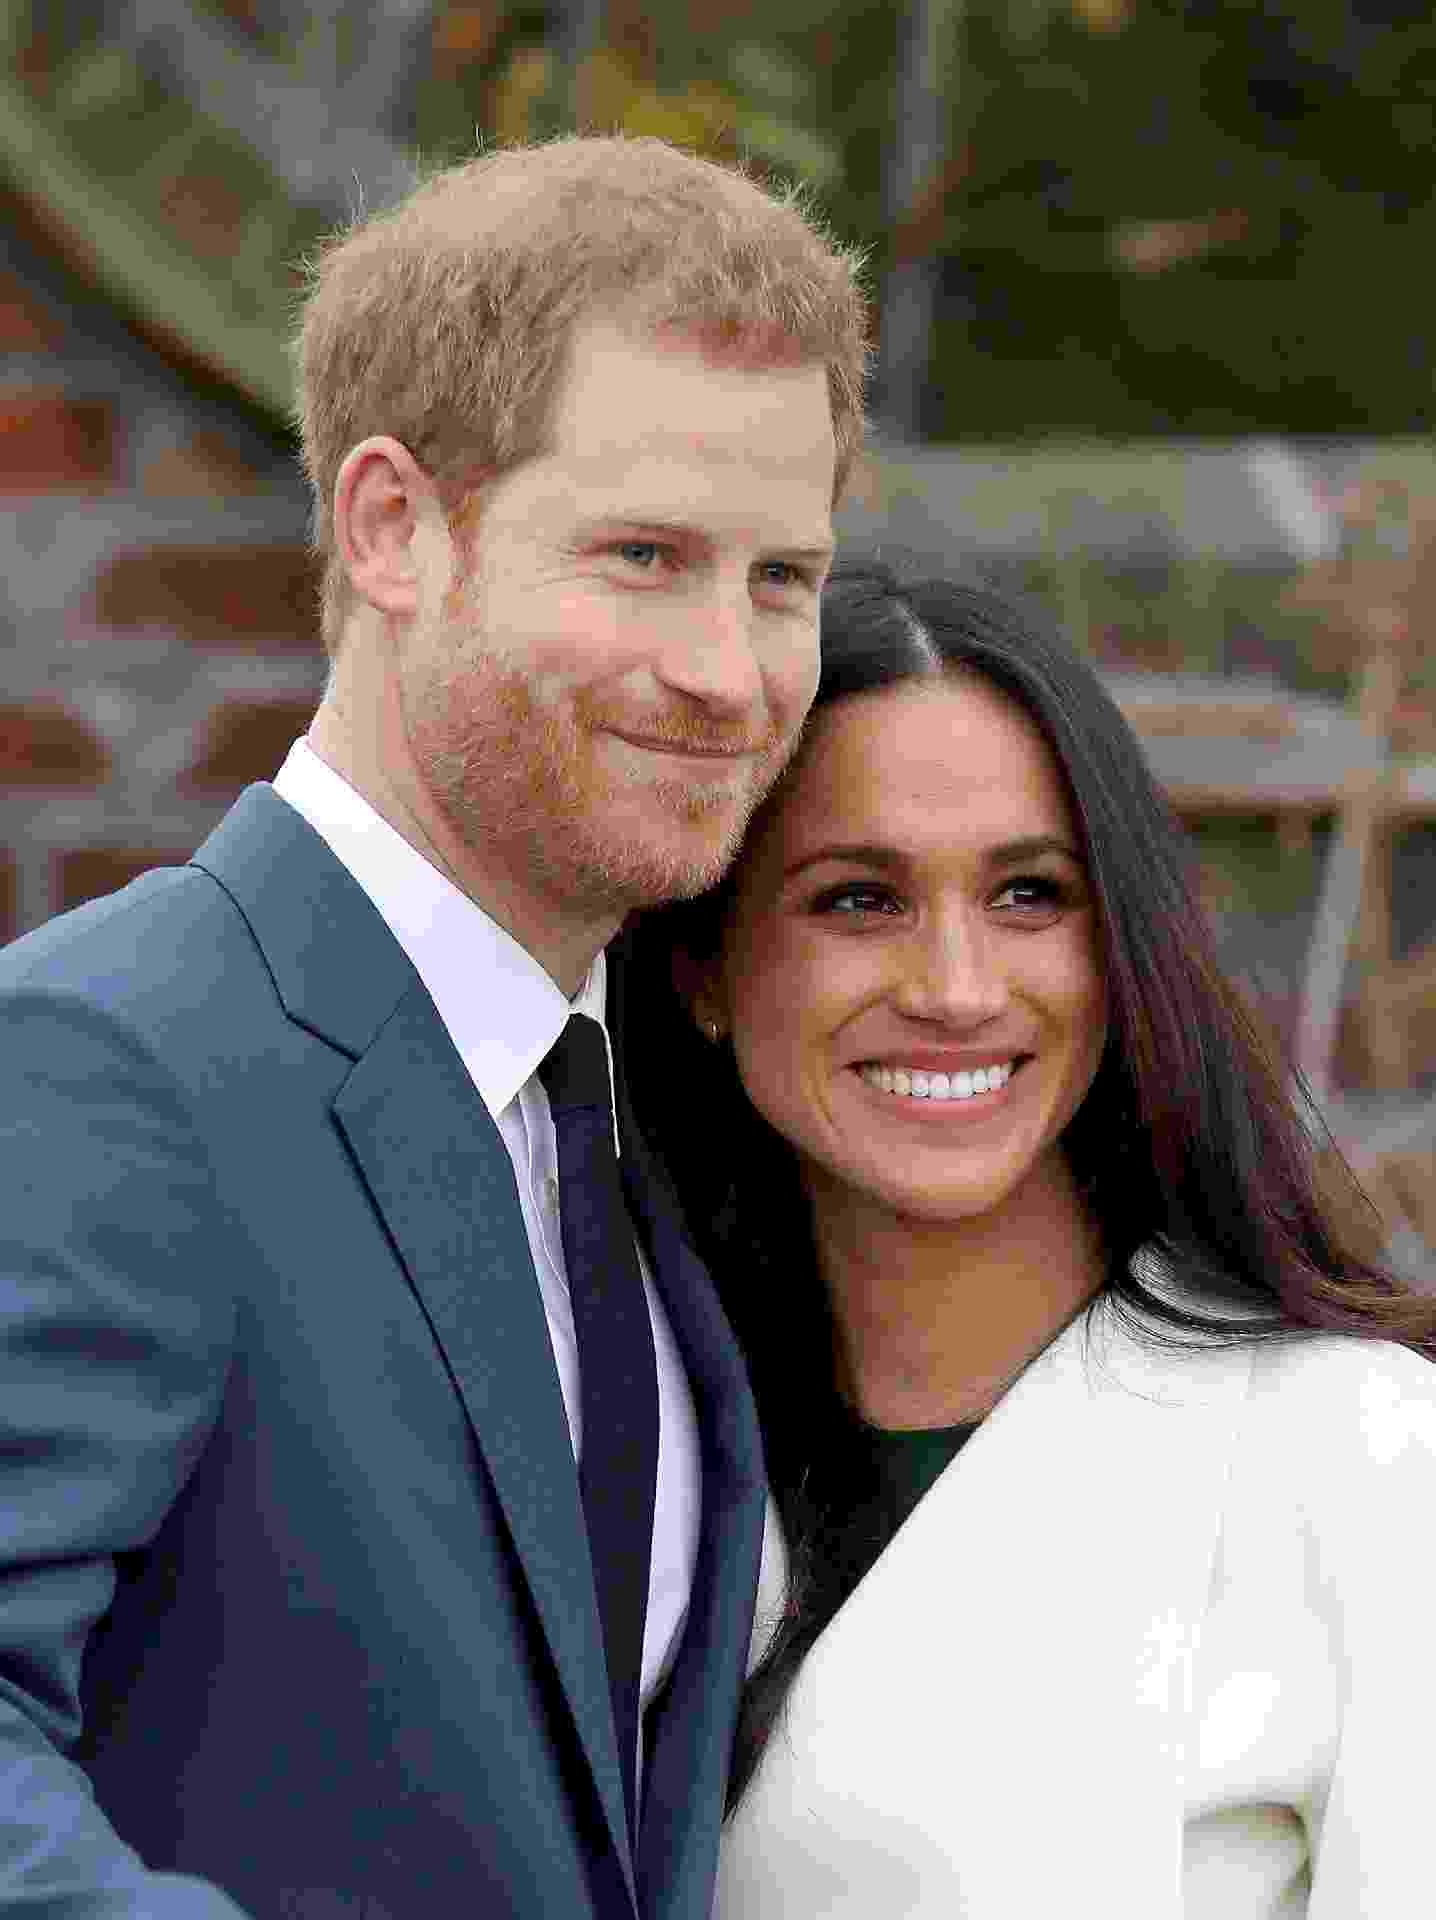 Harry meghan markle - Getty Images